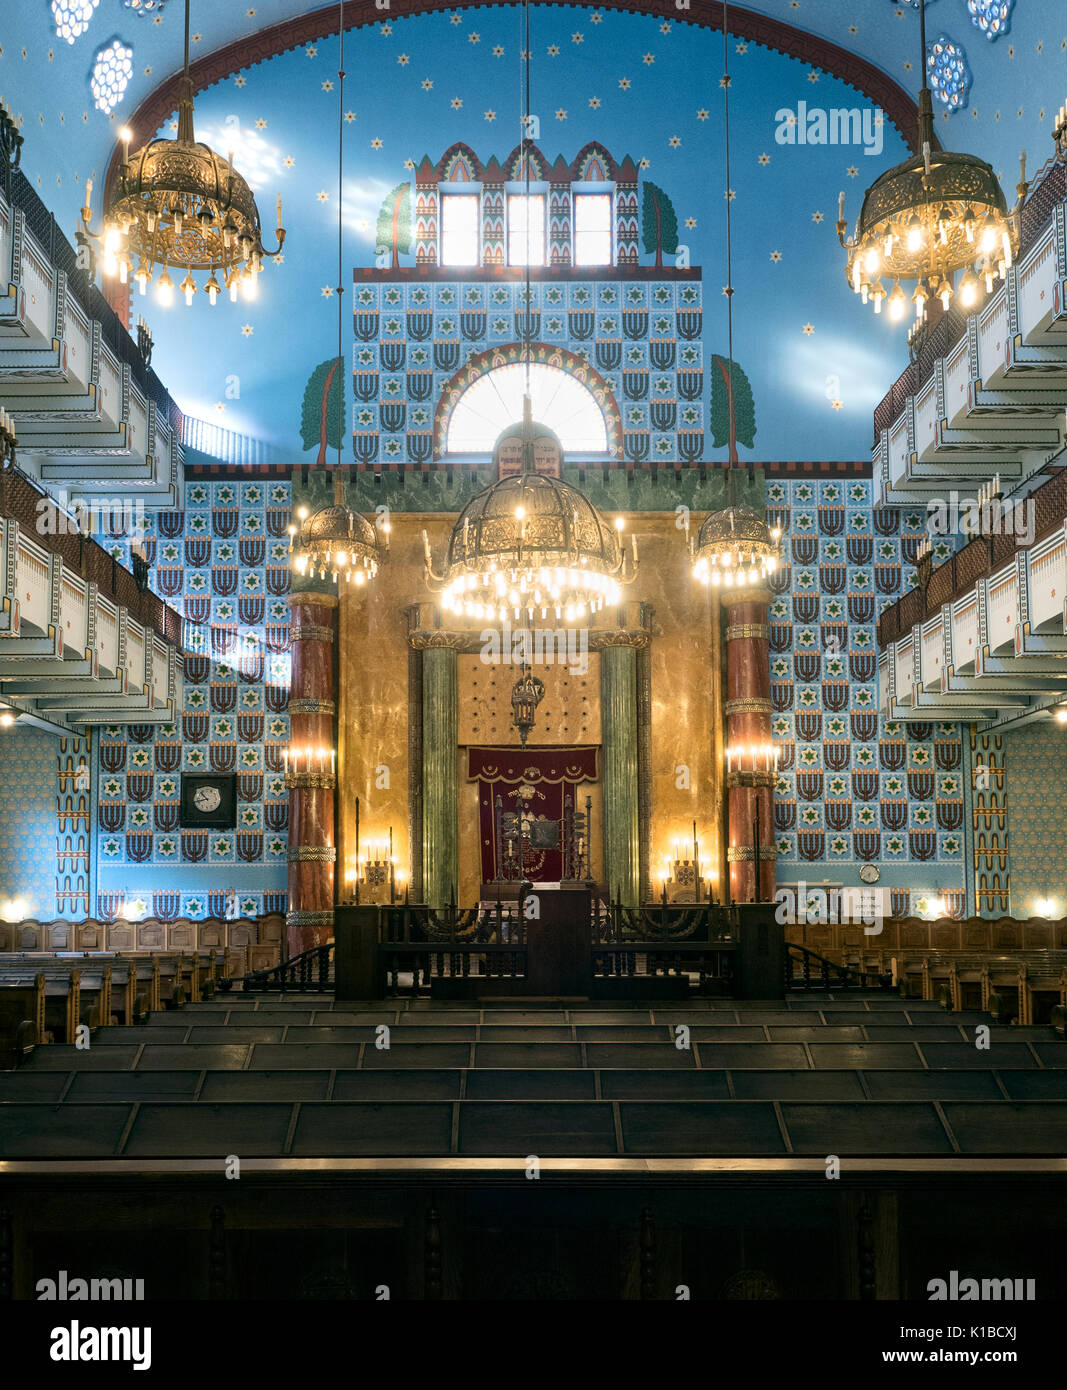 Interior view of Kazinczy Street Orthodox Synagogue, located in the centre of Budapest, Hungary - Stock Image